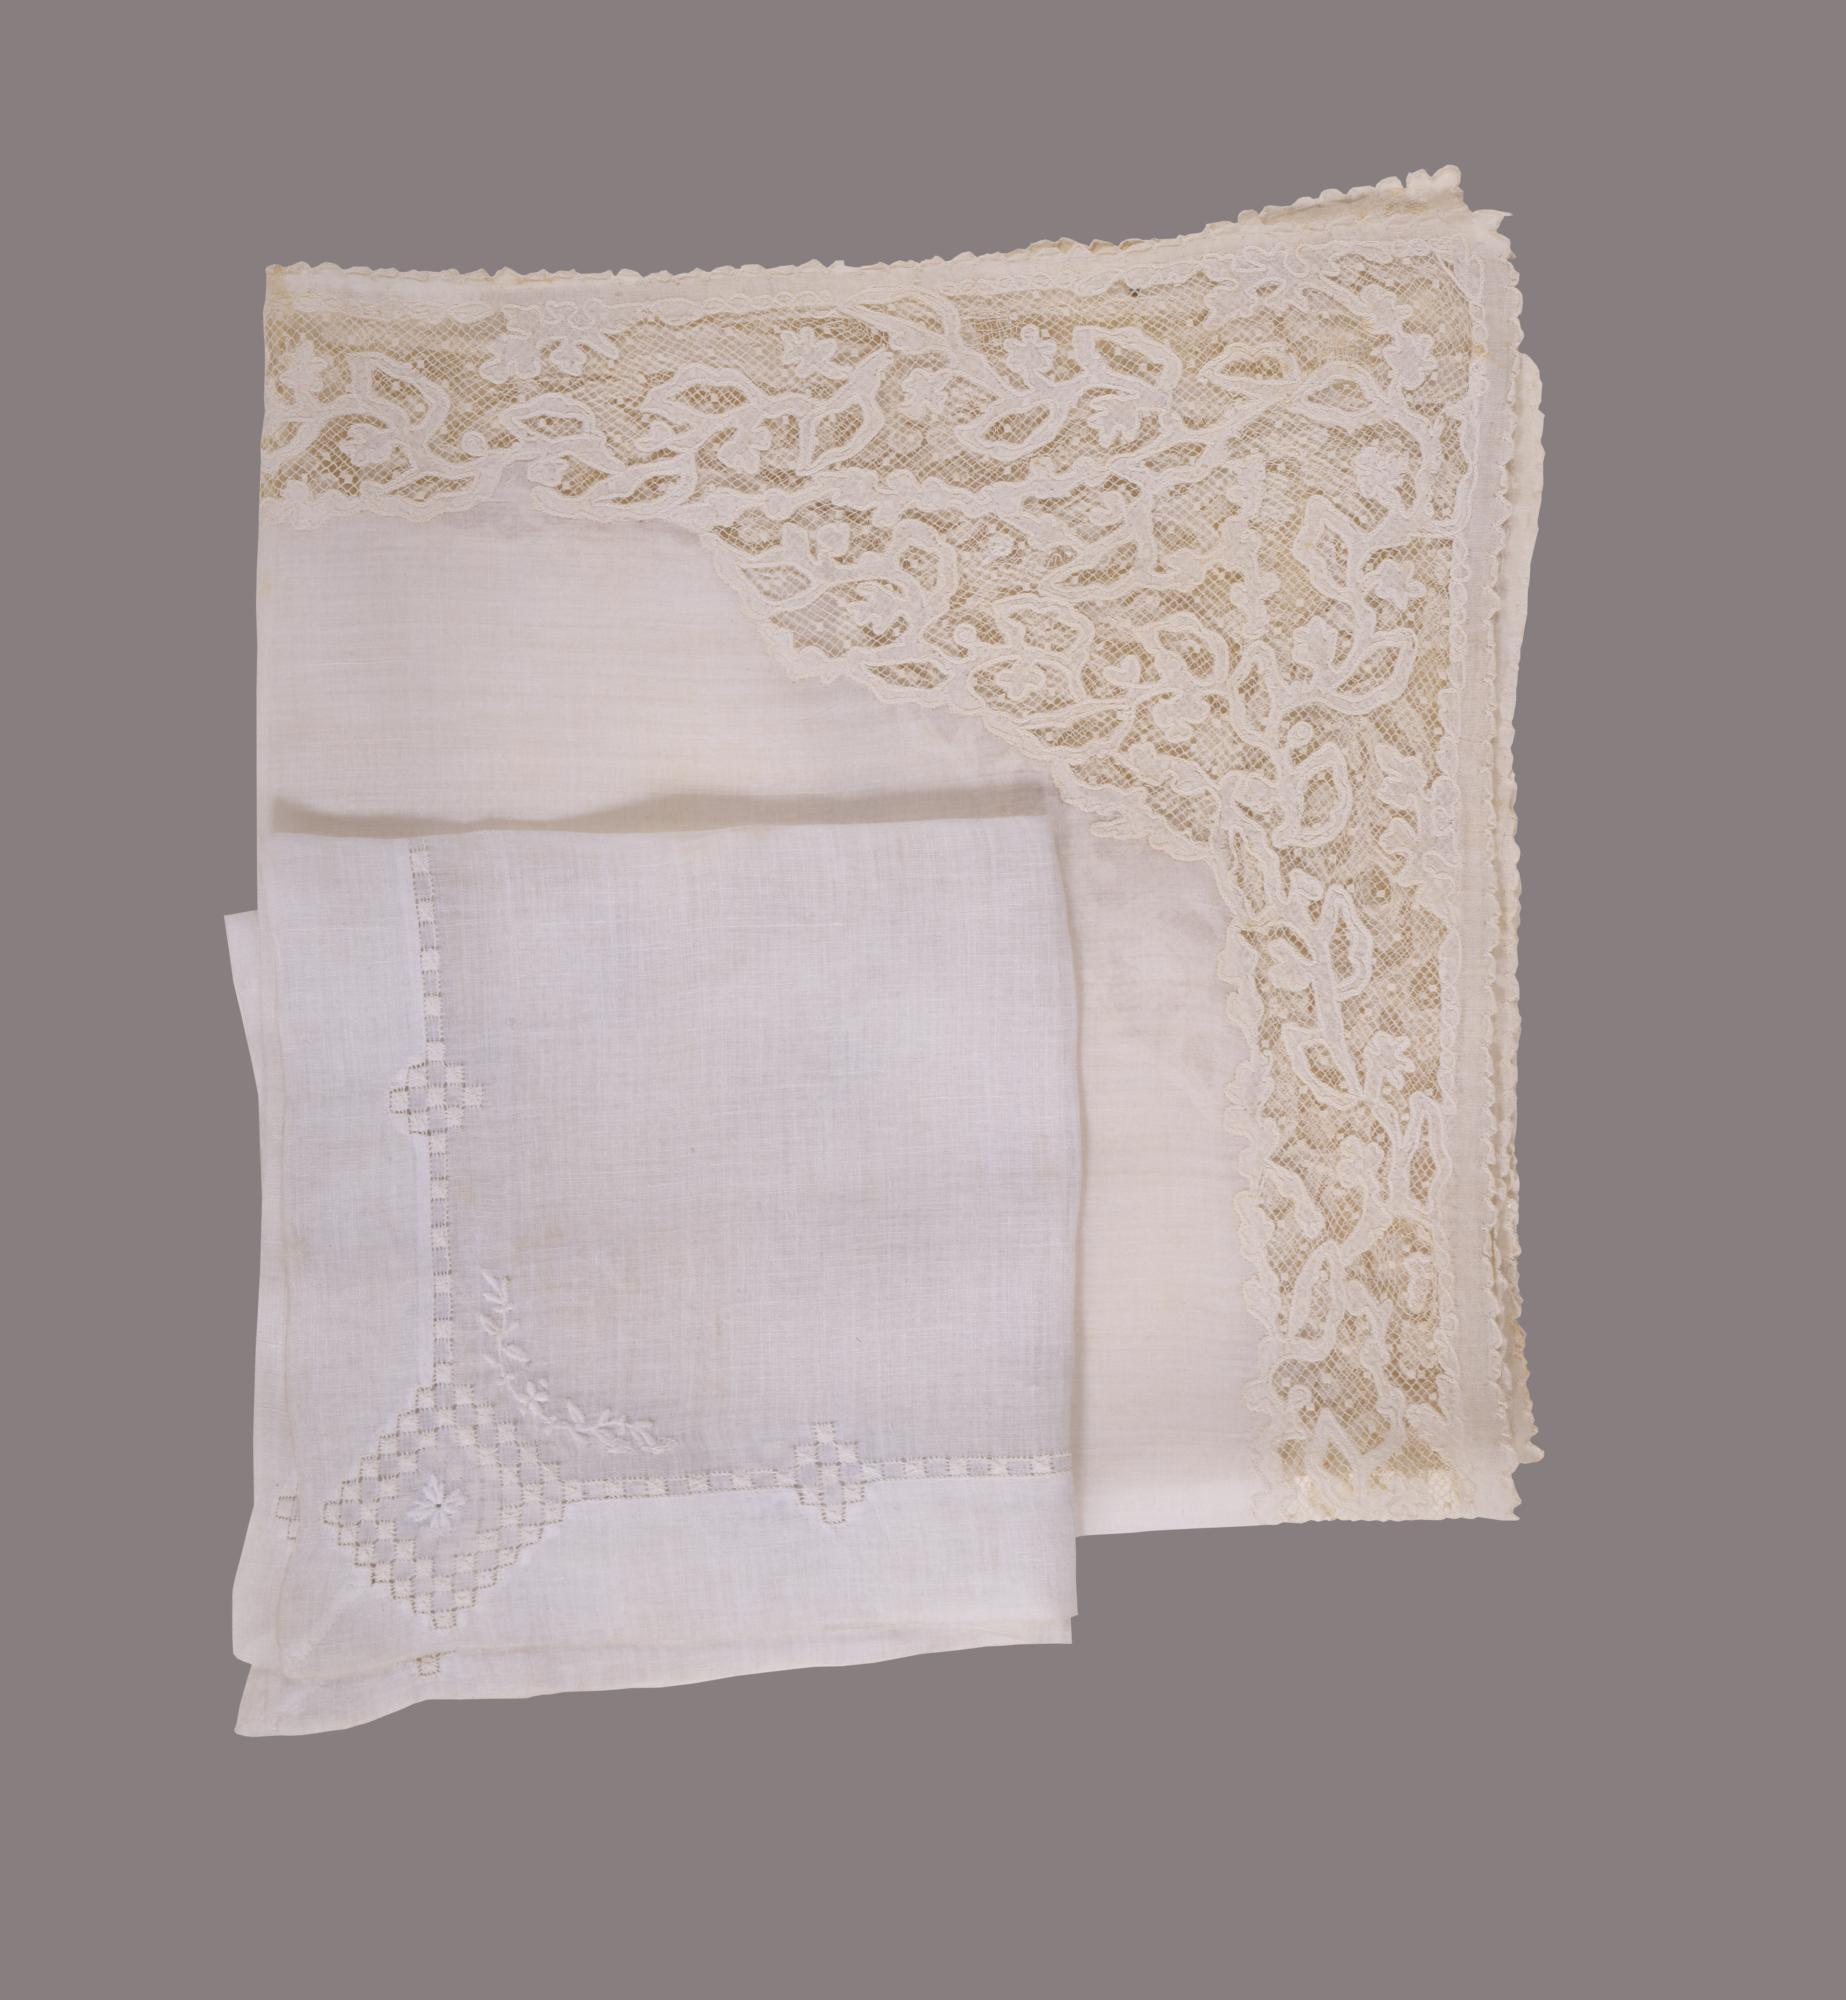 Wedding handkerchiefs of Alexander and Elizabeth Hamilton